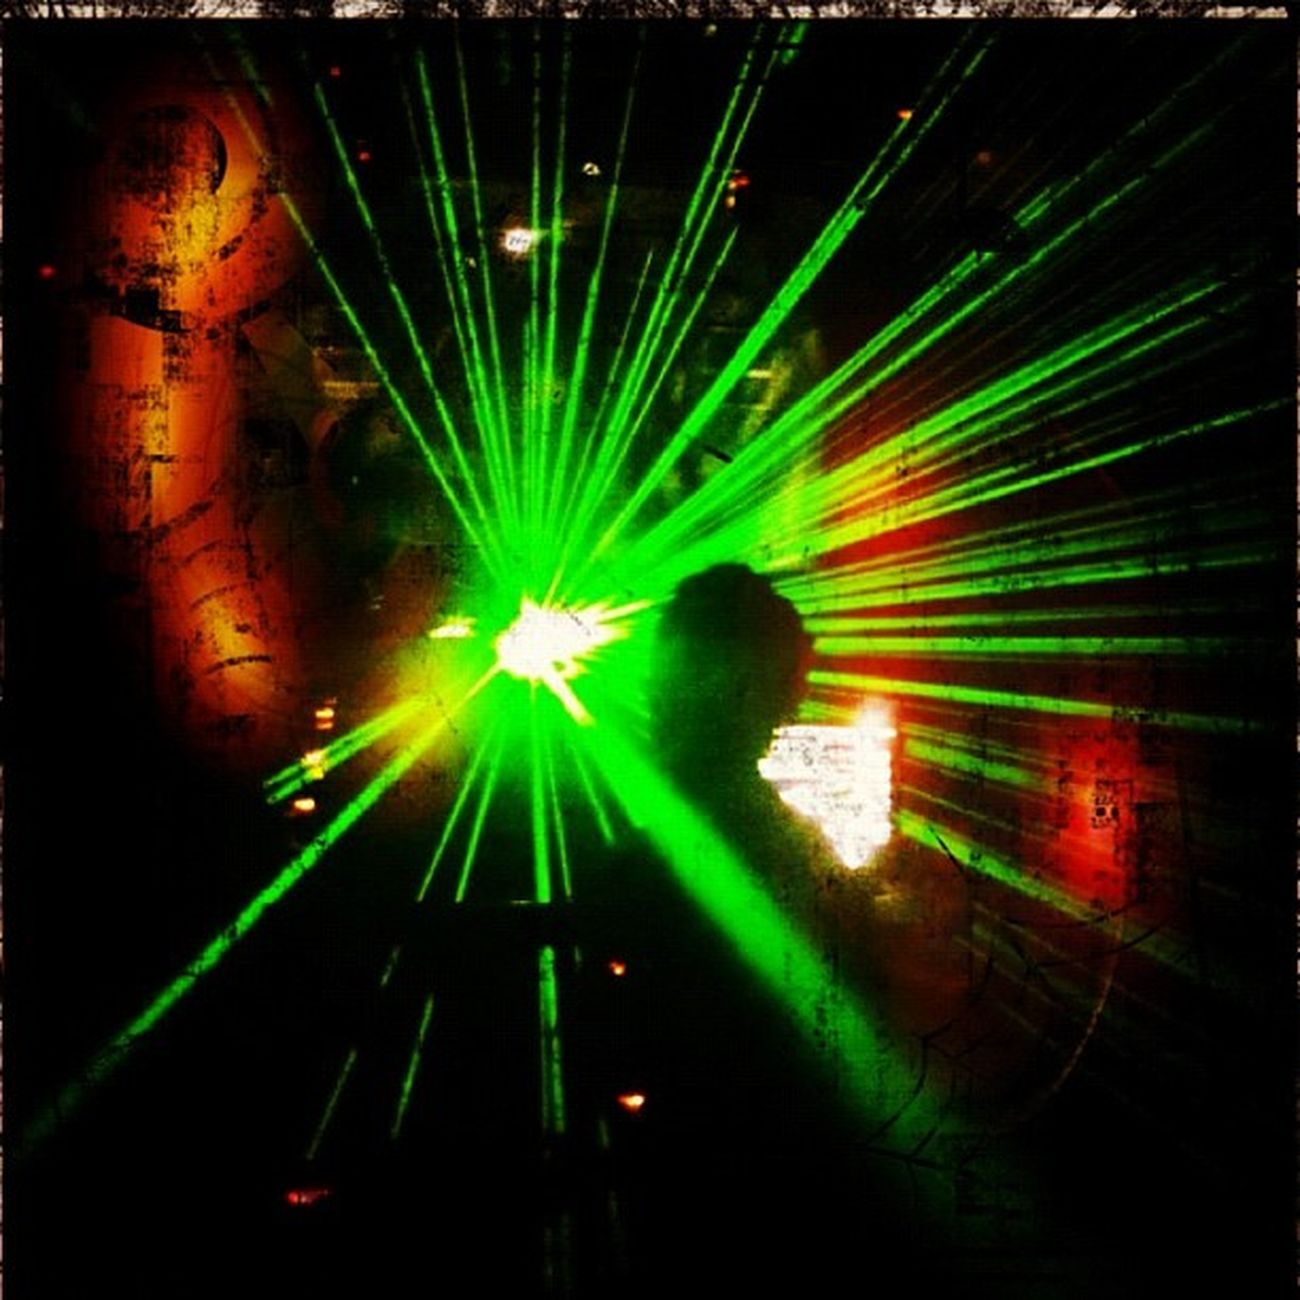 Let the party begin Laserbeam Iphonasia Iphotography Instagramers instadaily instagramhub iphonesia iphonograph firststate indoclubscene iphoneonly